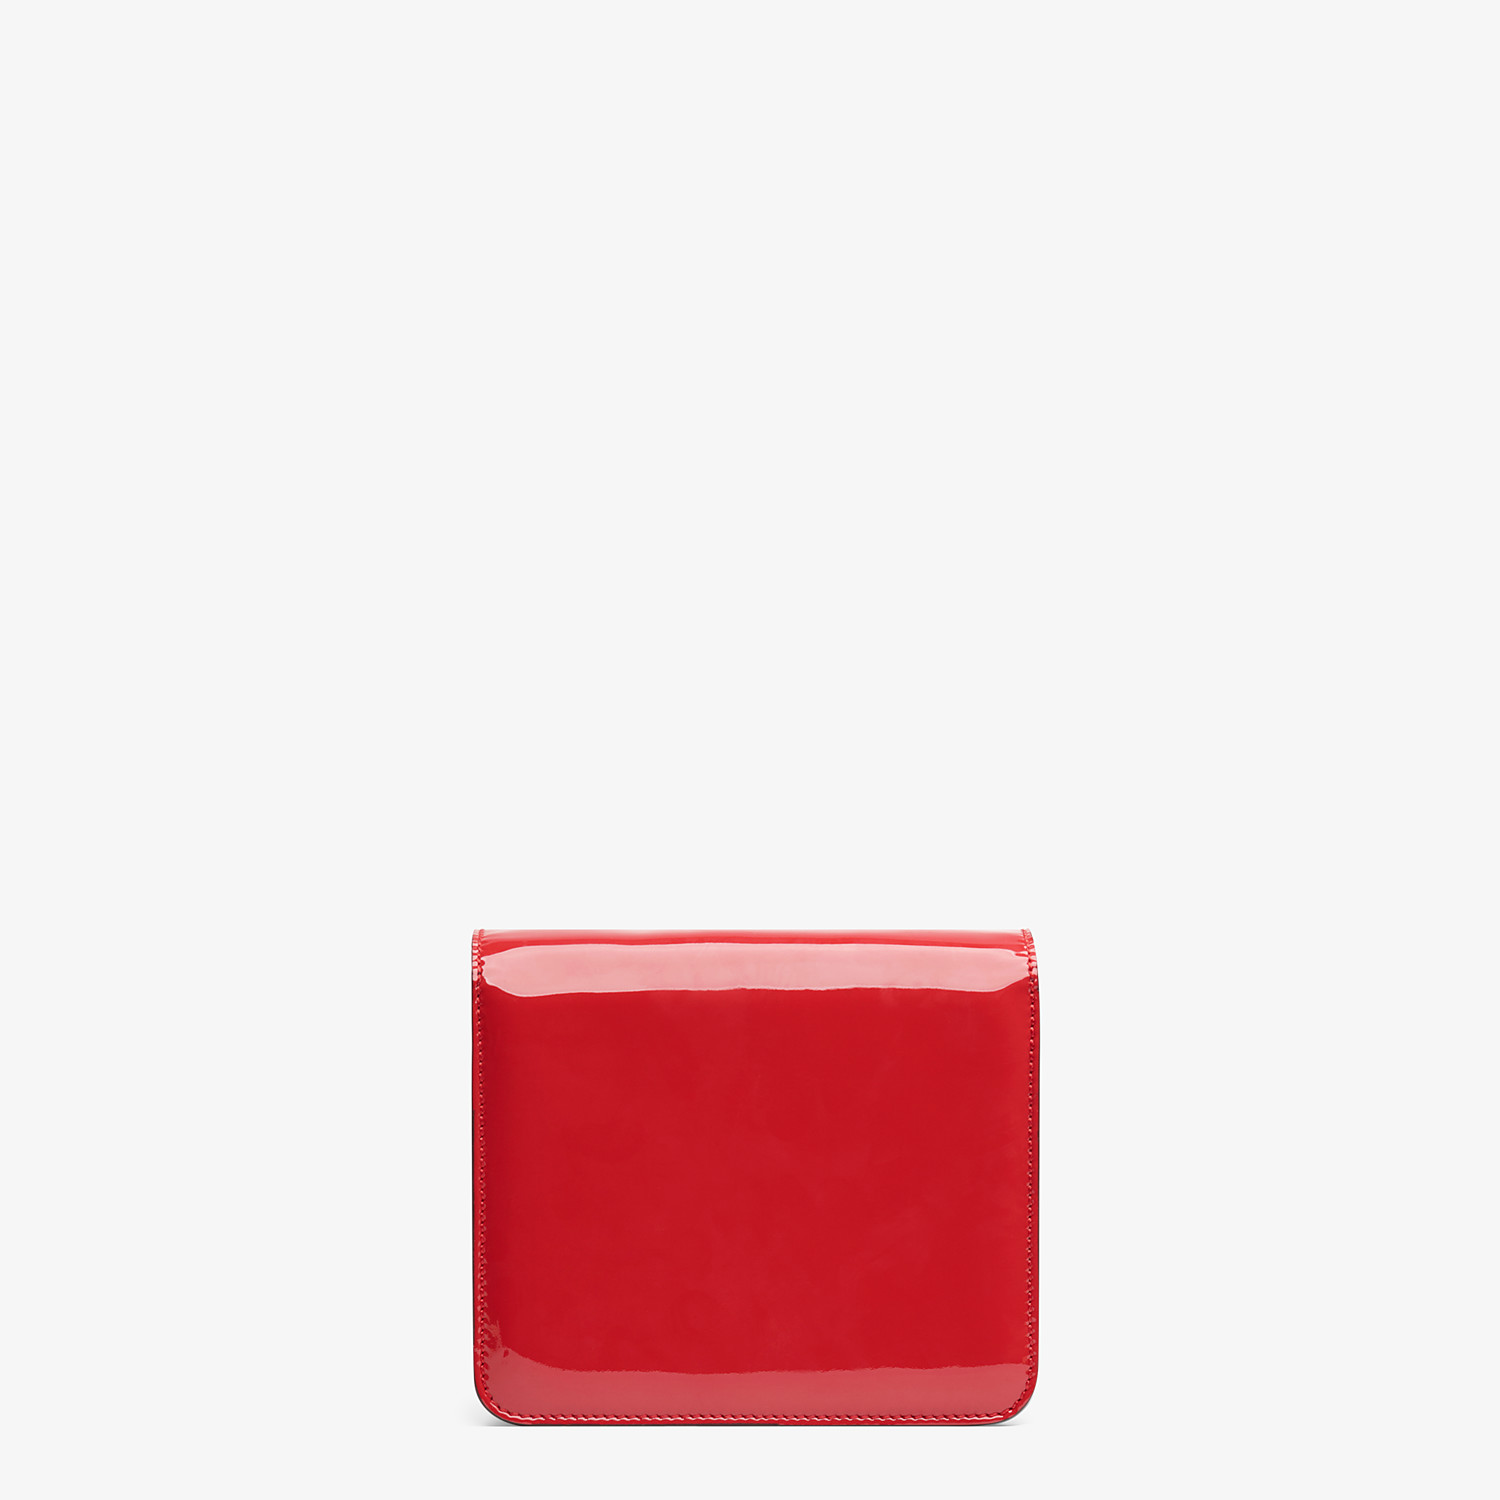 FENDI KARLIGRAPHY - Red patent leather bag - view 4 detail